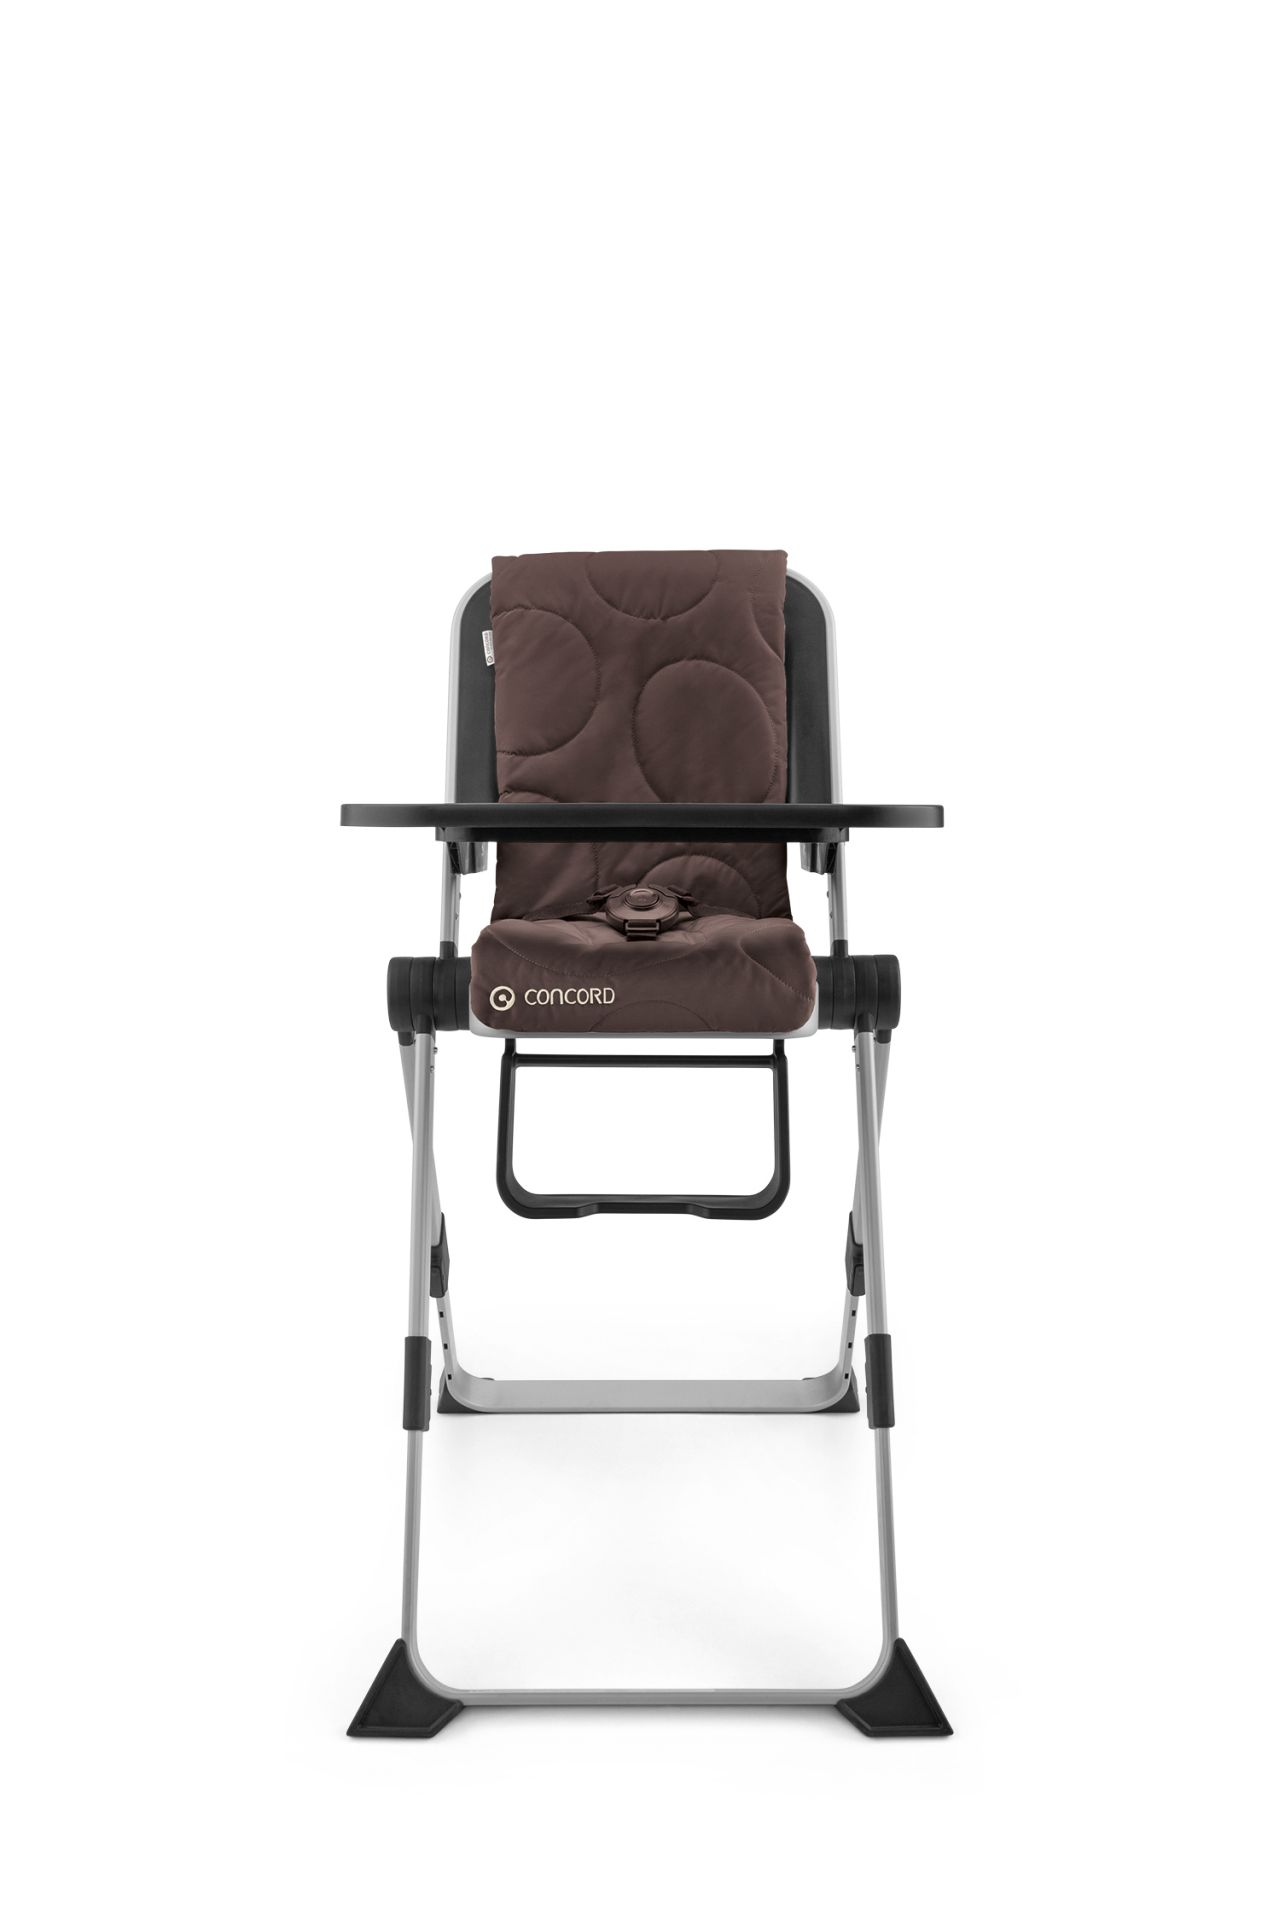 Concord high chair SPIN 2017 Toffee Brown Buy at kidsroom